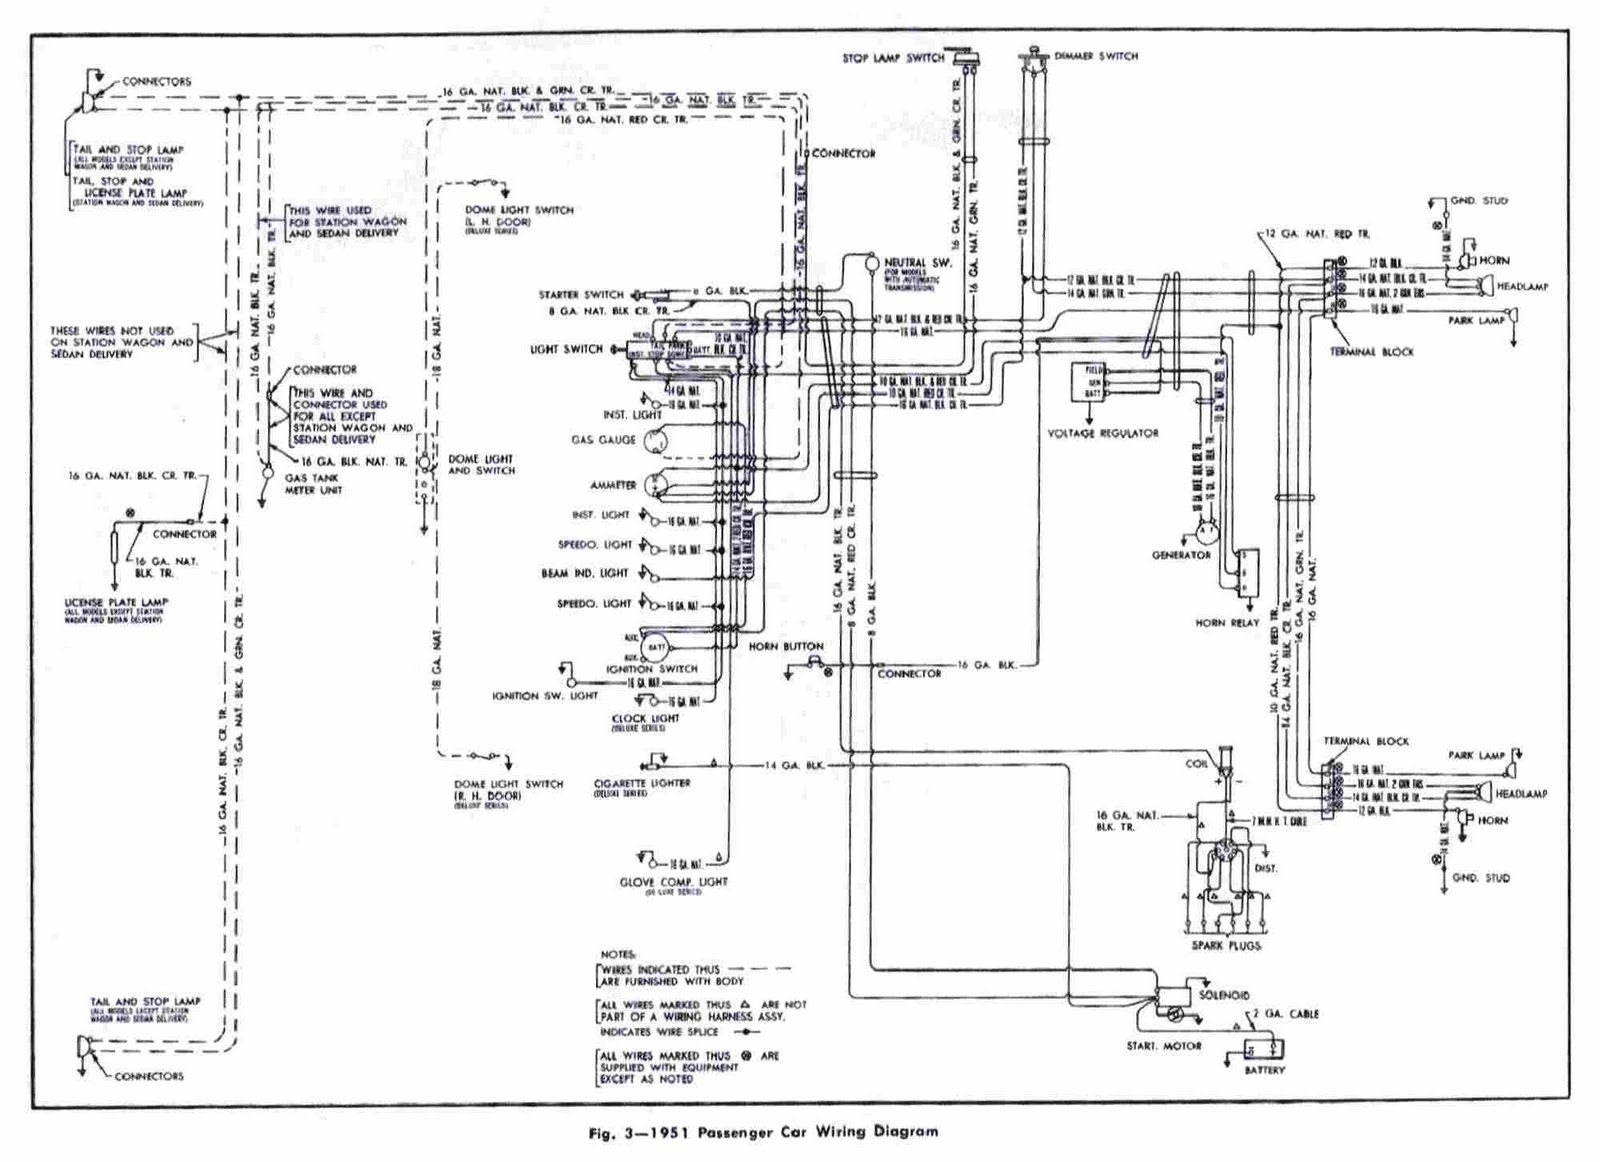 Chevrolet Bel Air Wiring Diagram